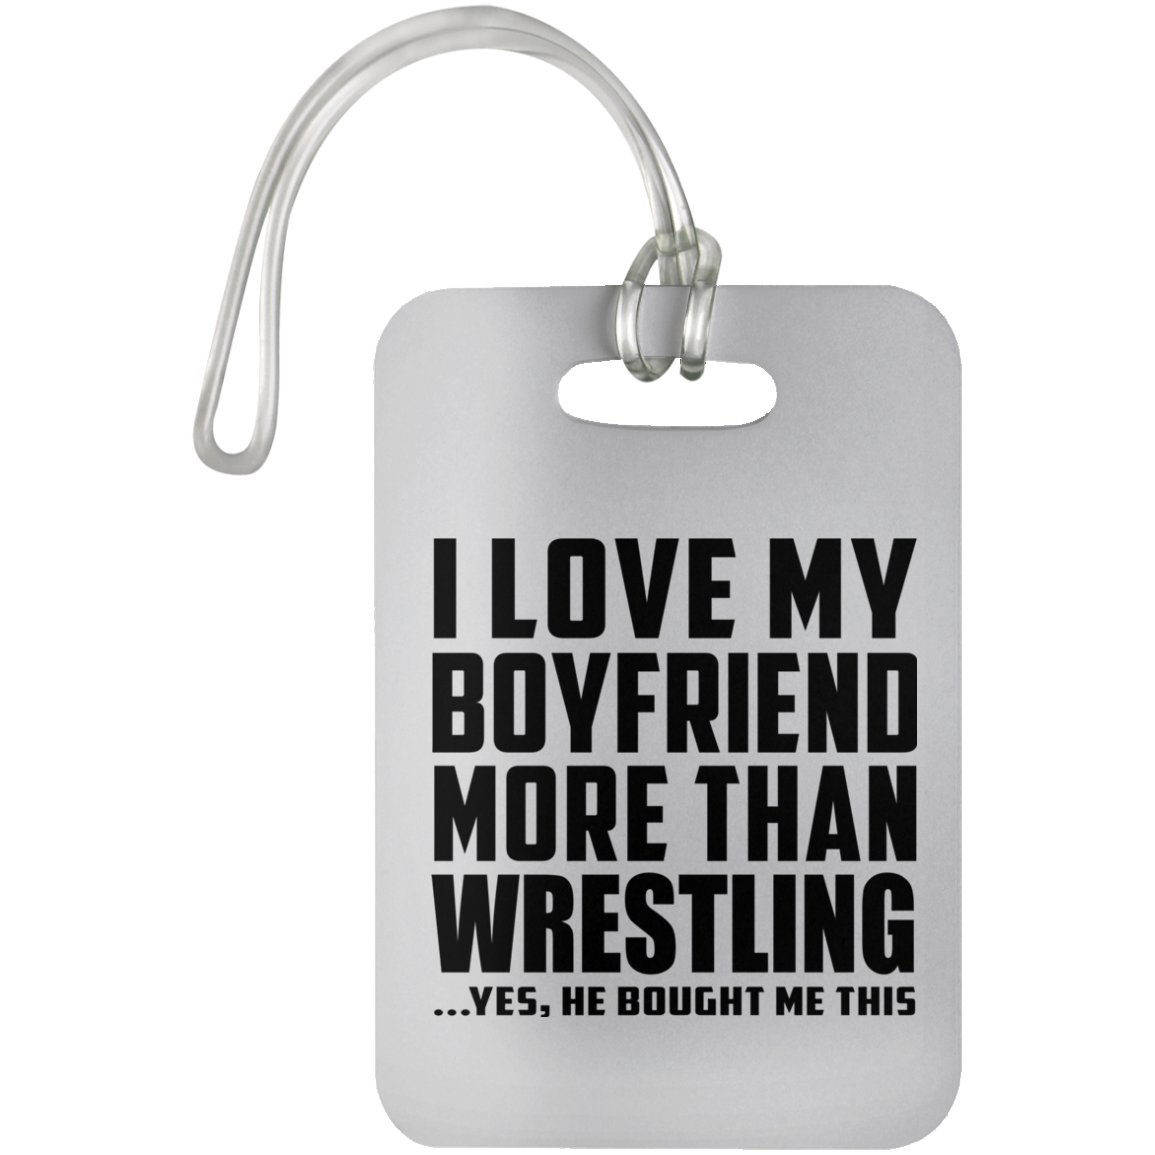 I Love My Boyfriend More Than Wrestling .He Bought Me This - Luggage Tag, Suitcase Bag ID Tag